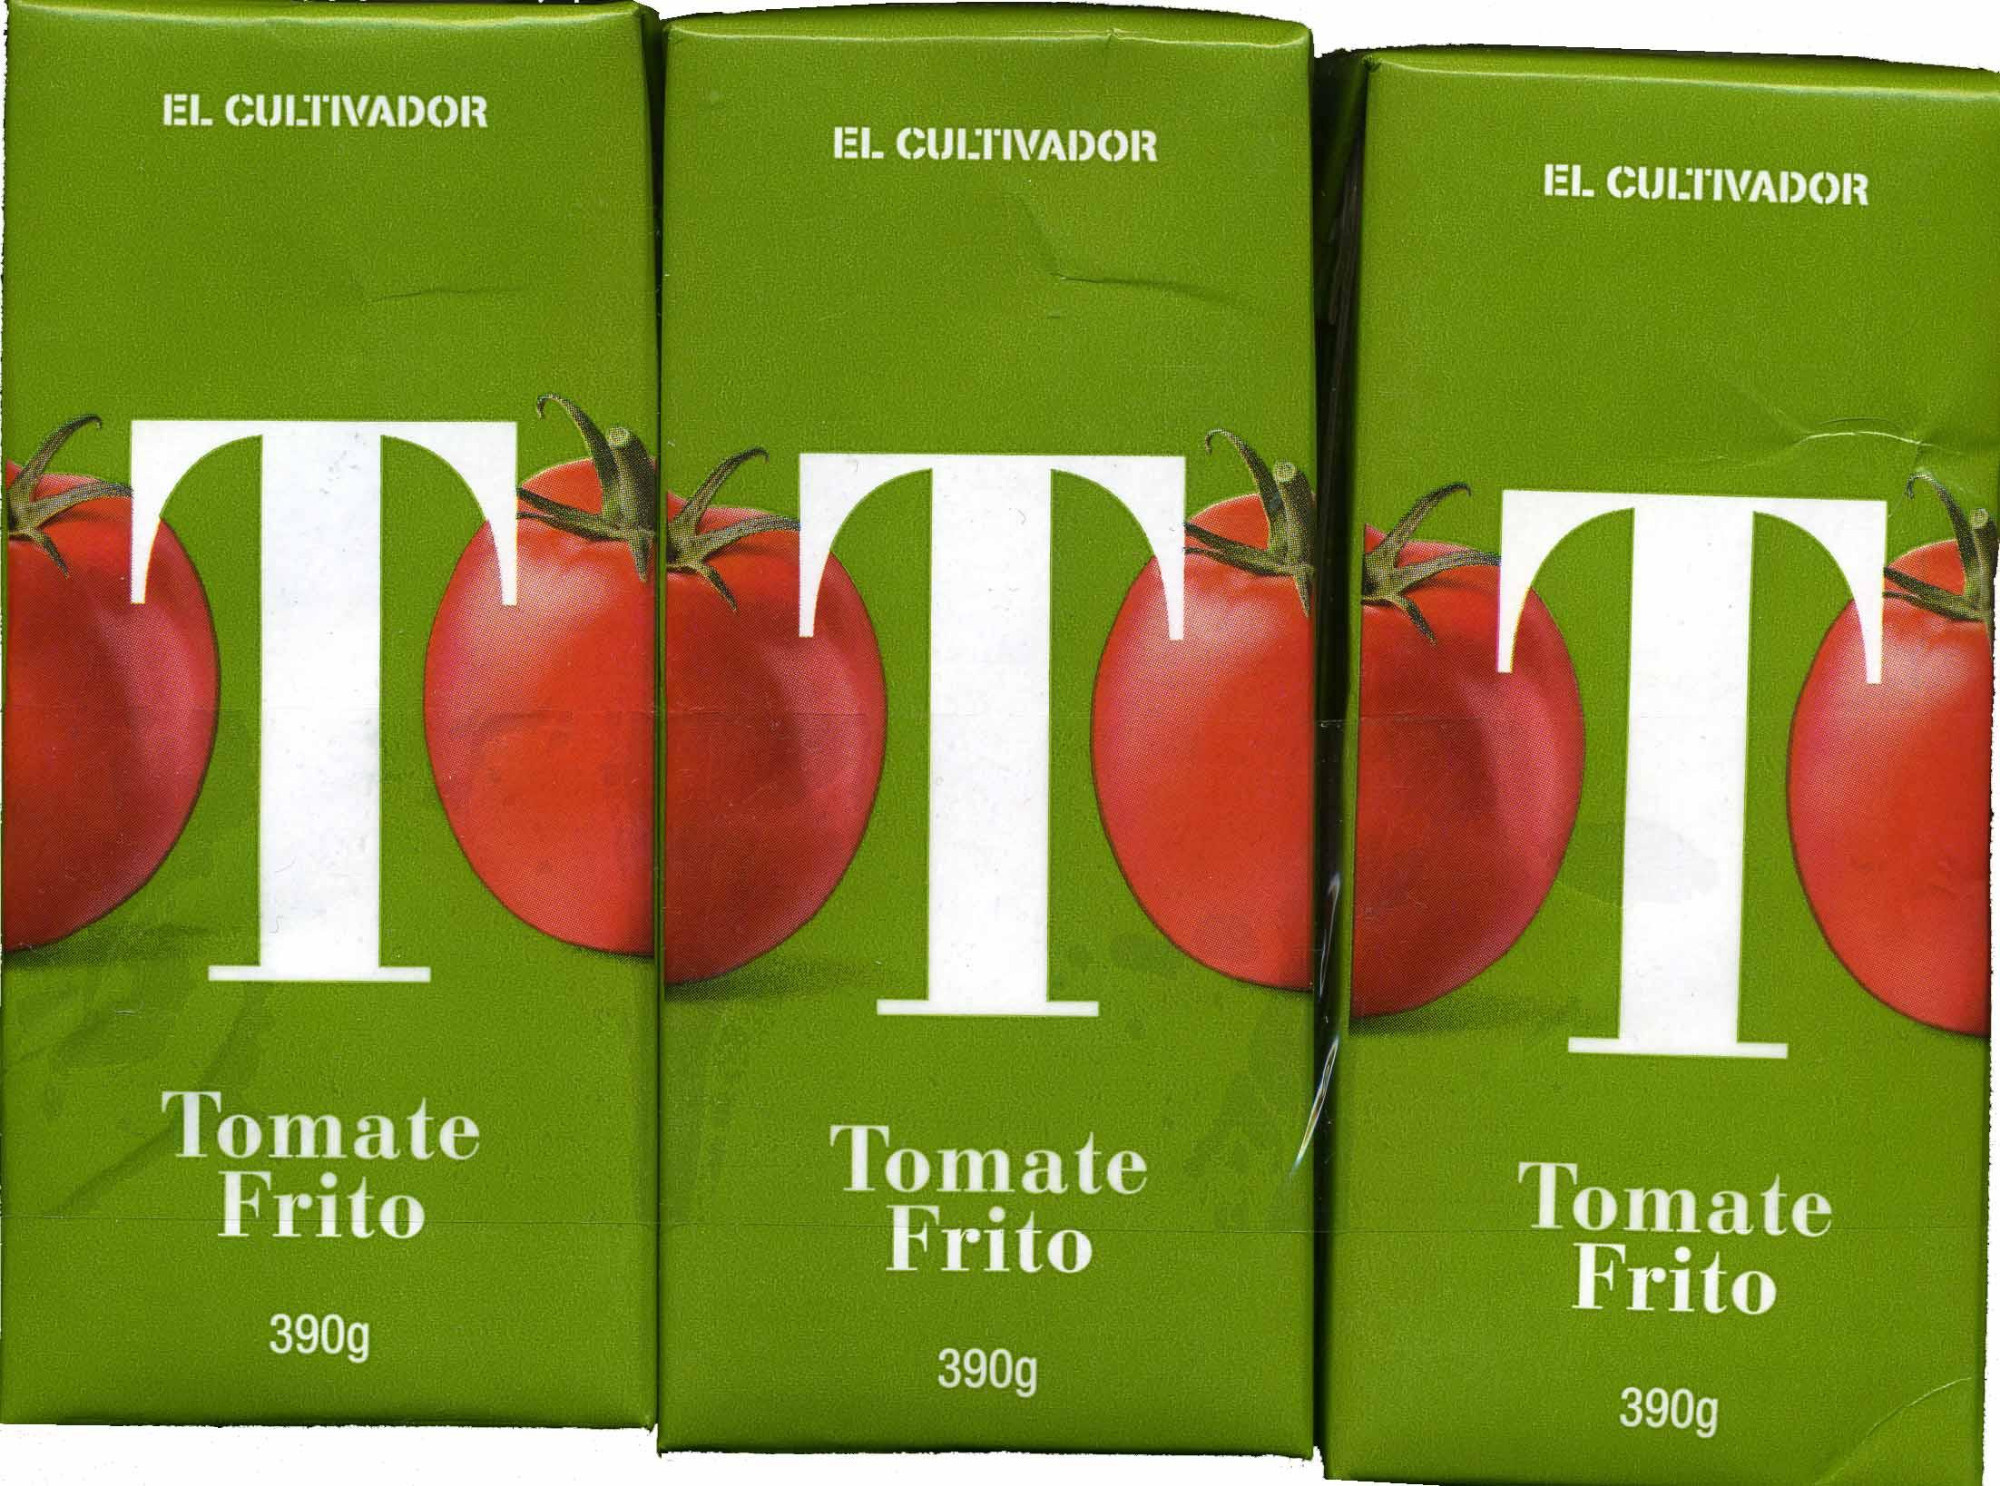 Tomate frito - Product - es